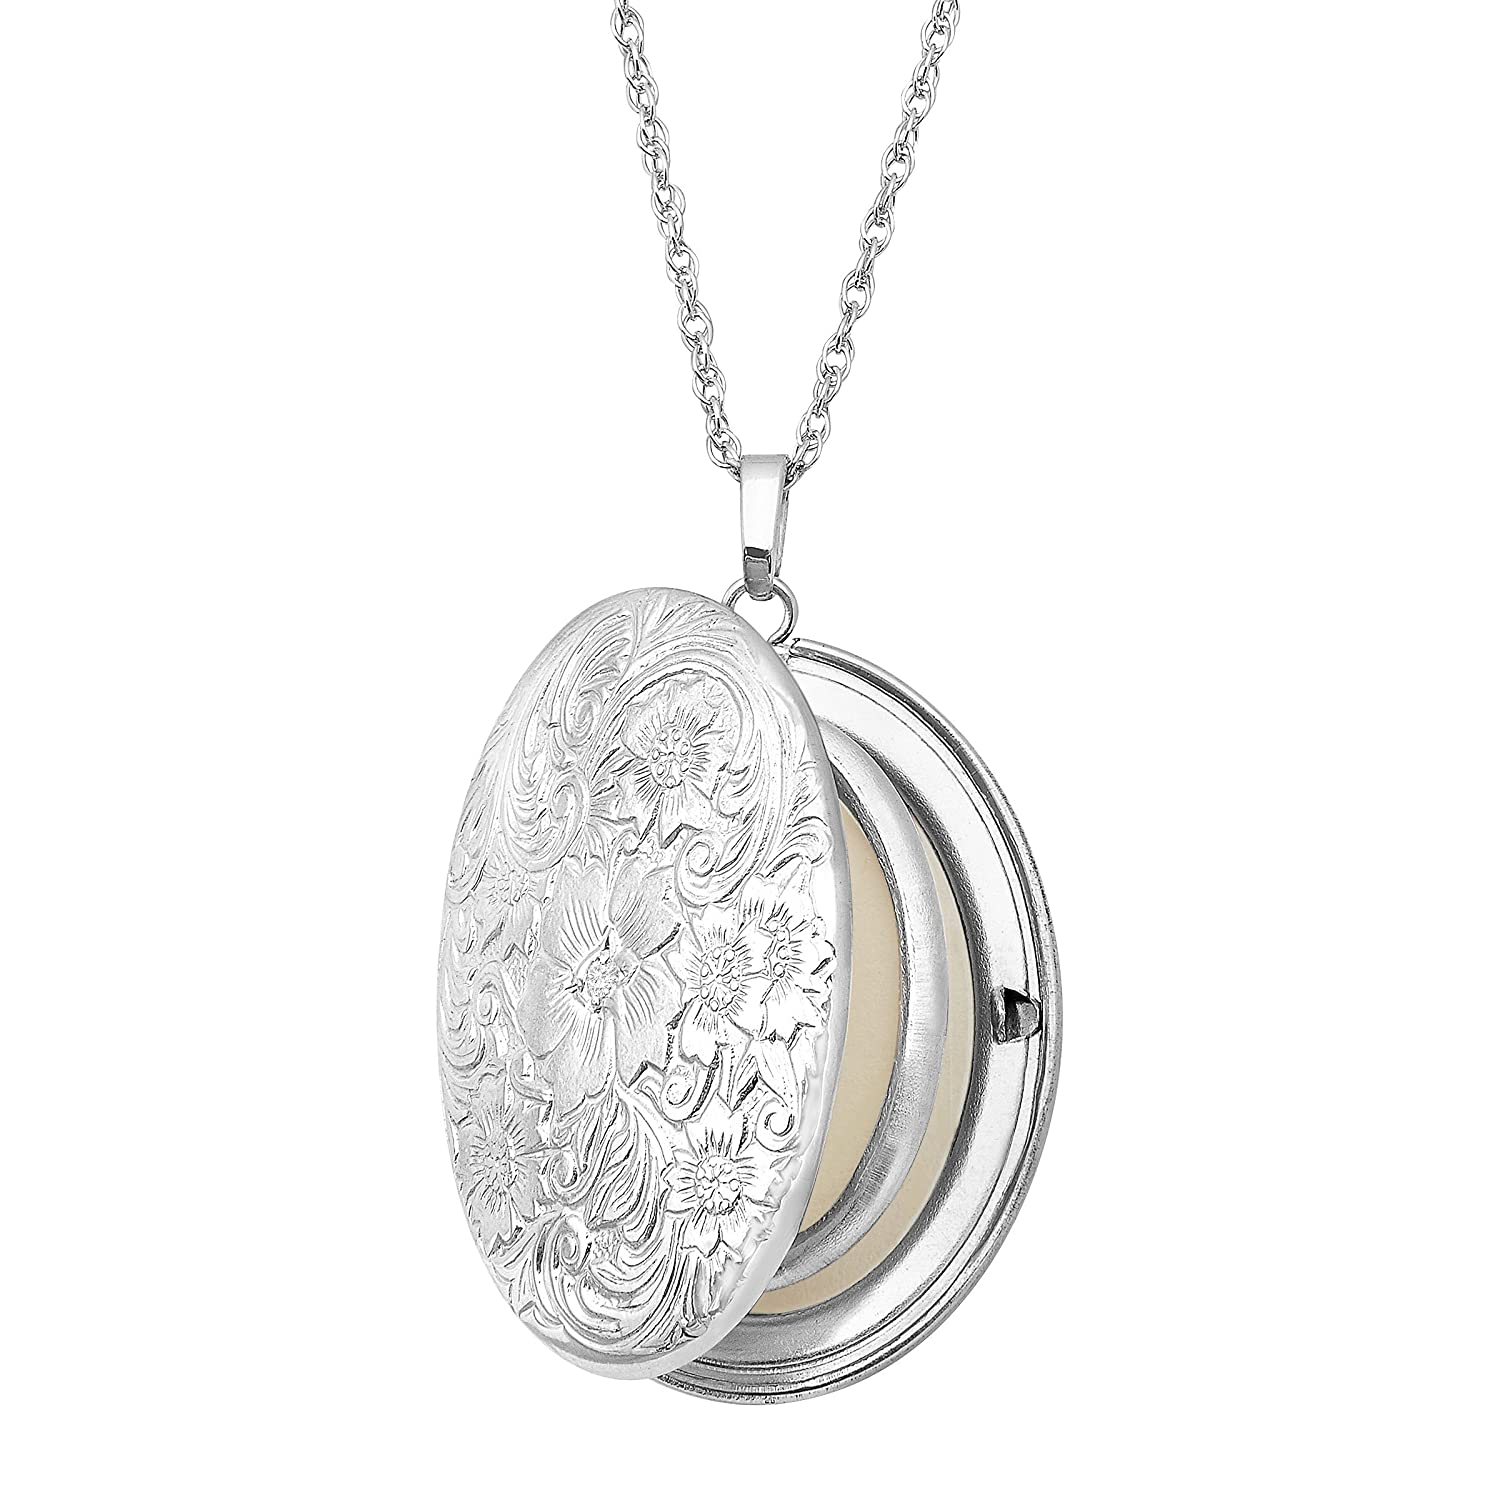 Floral Locket Necklace Pendant with Diamond in Sterling Silver